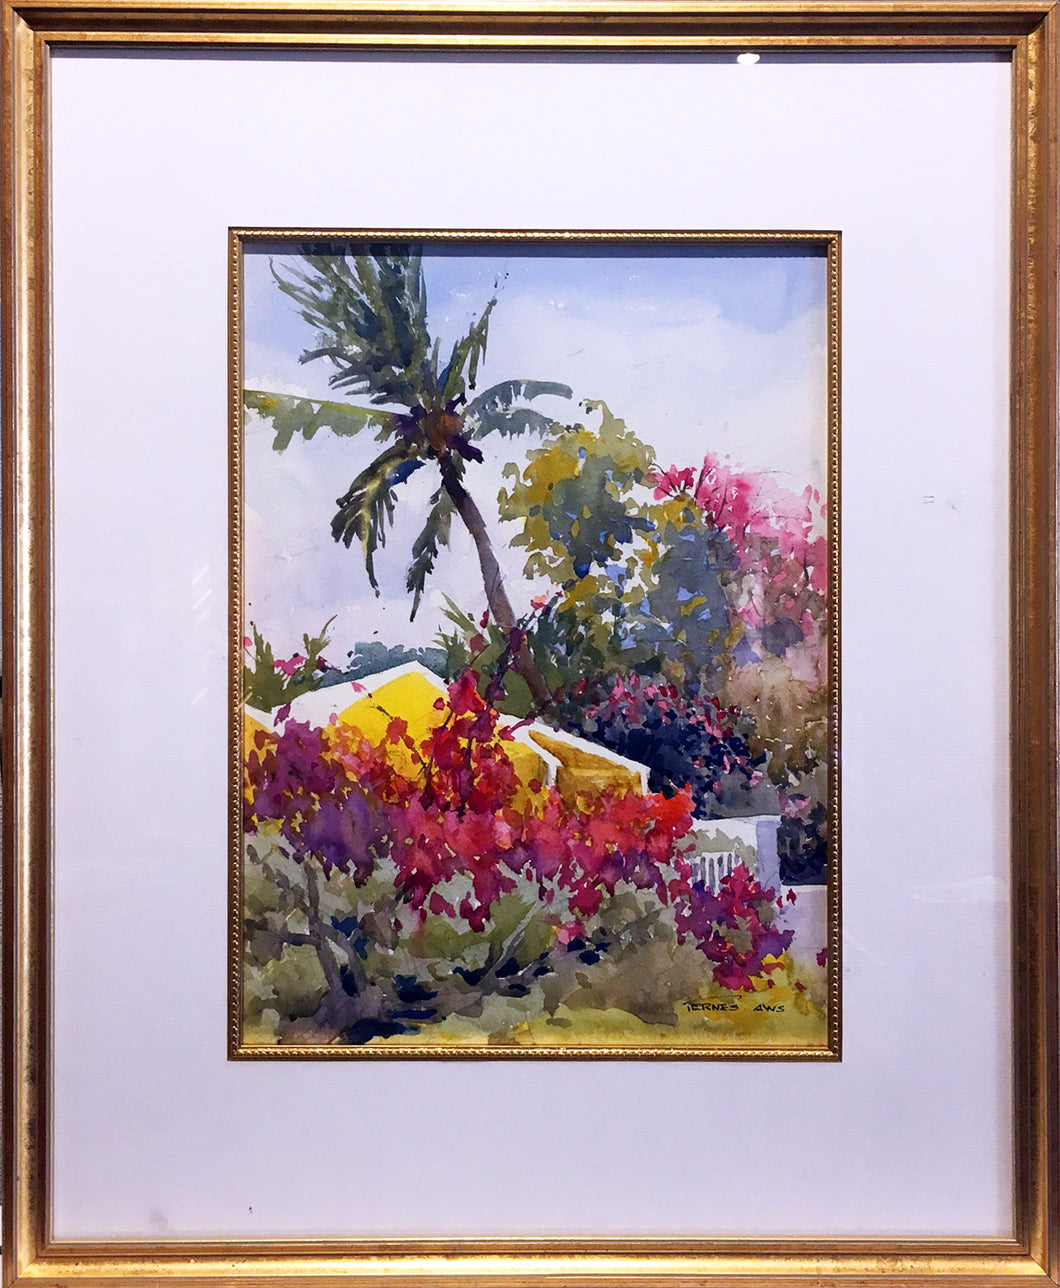 Harbour Island, Bahamas III By William Ternes (1933 – 2014) - Carribean Island Water Color